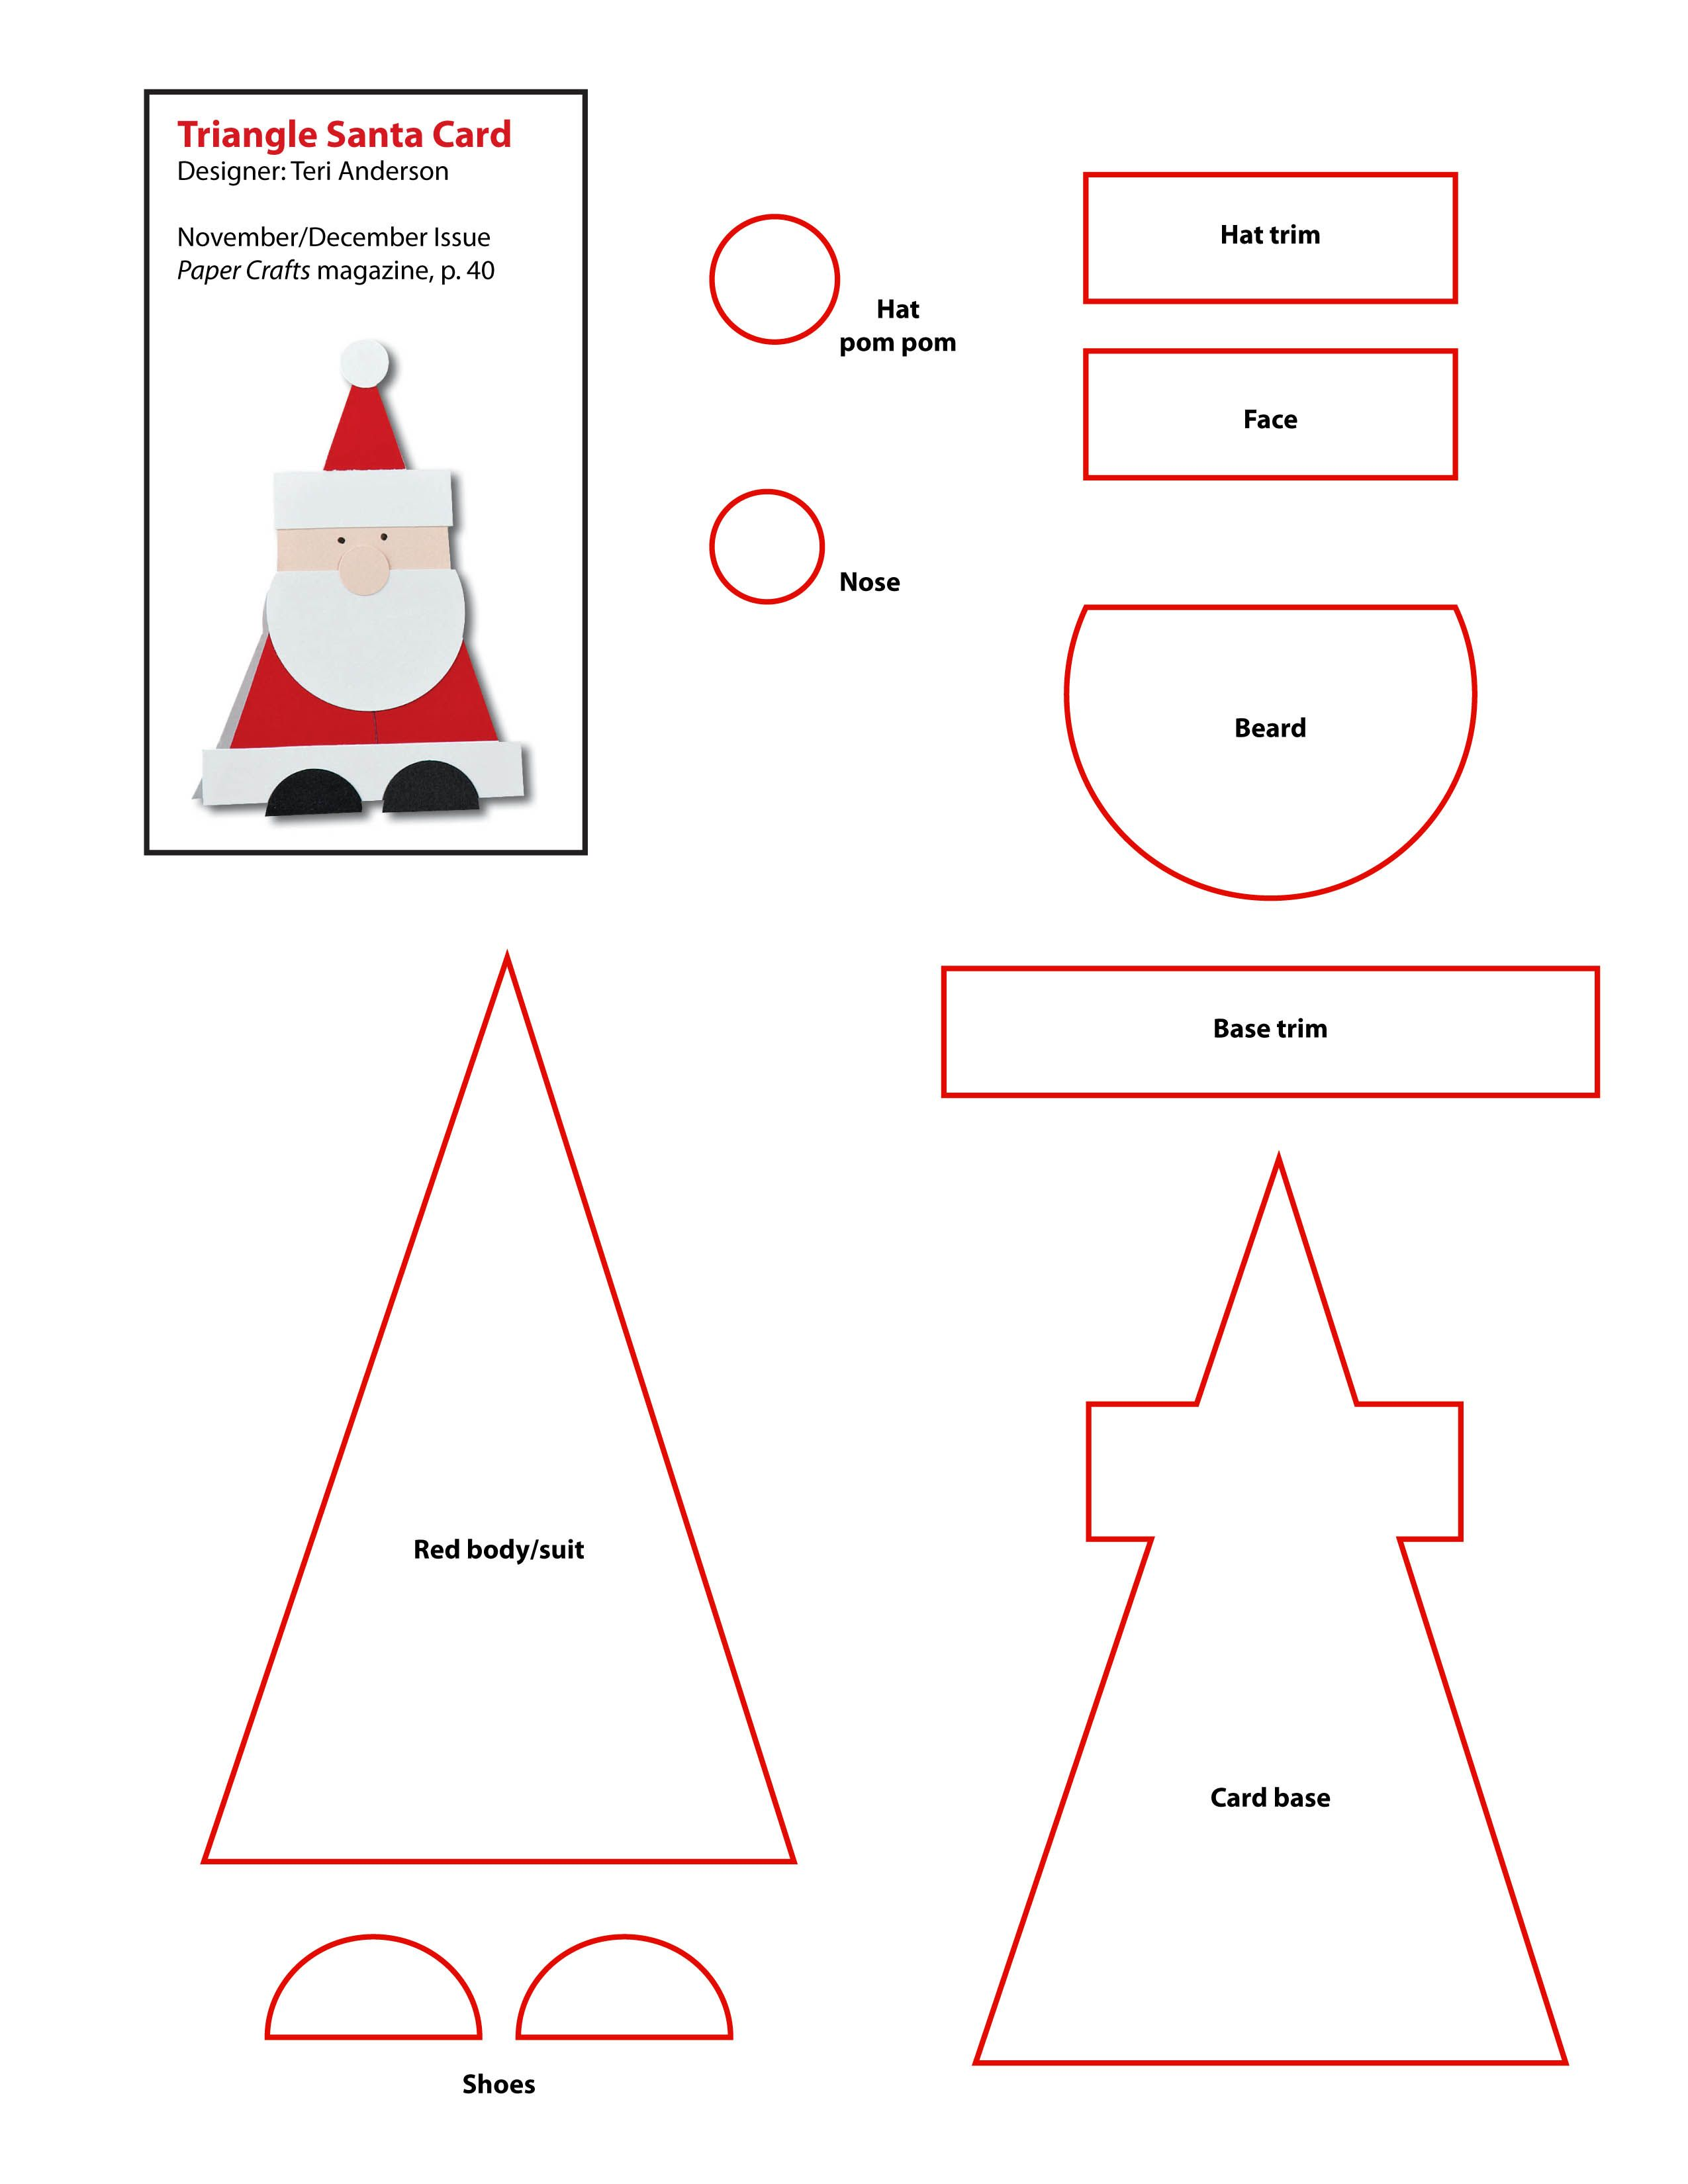 Pin by Dominique Snyman on CUTE CARDS | Pinterest | Santa, Template ...